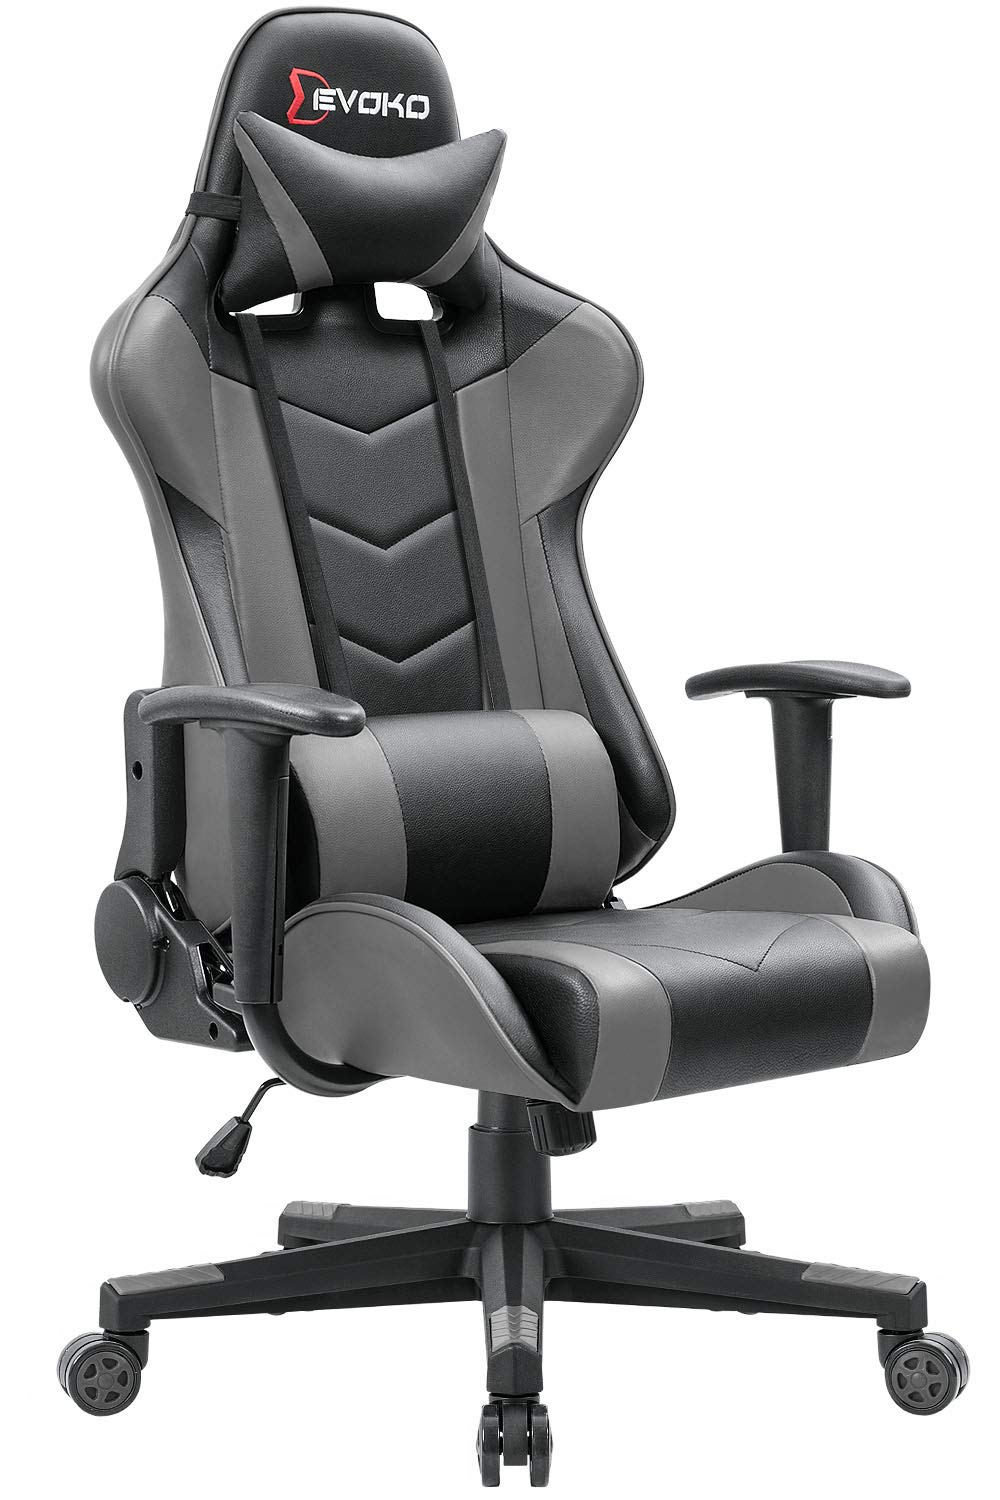 Gaming Chair Under $100